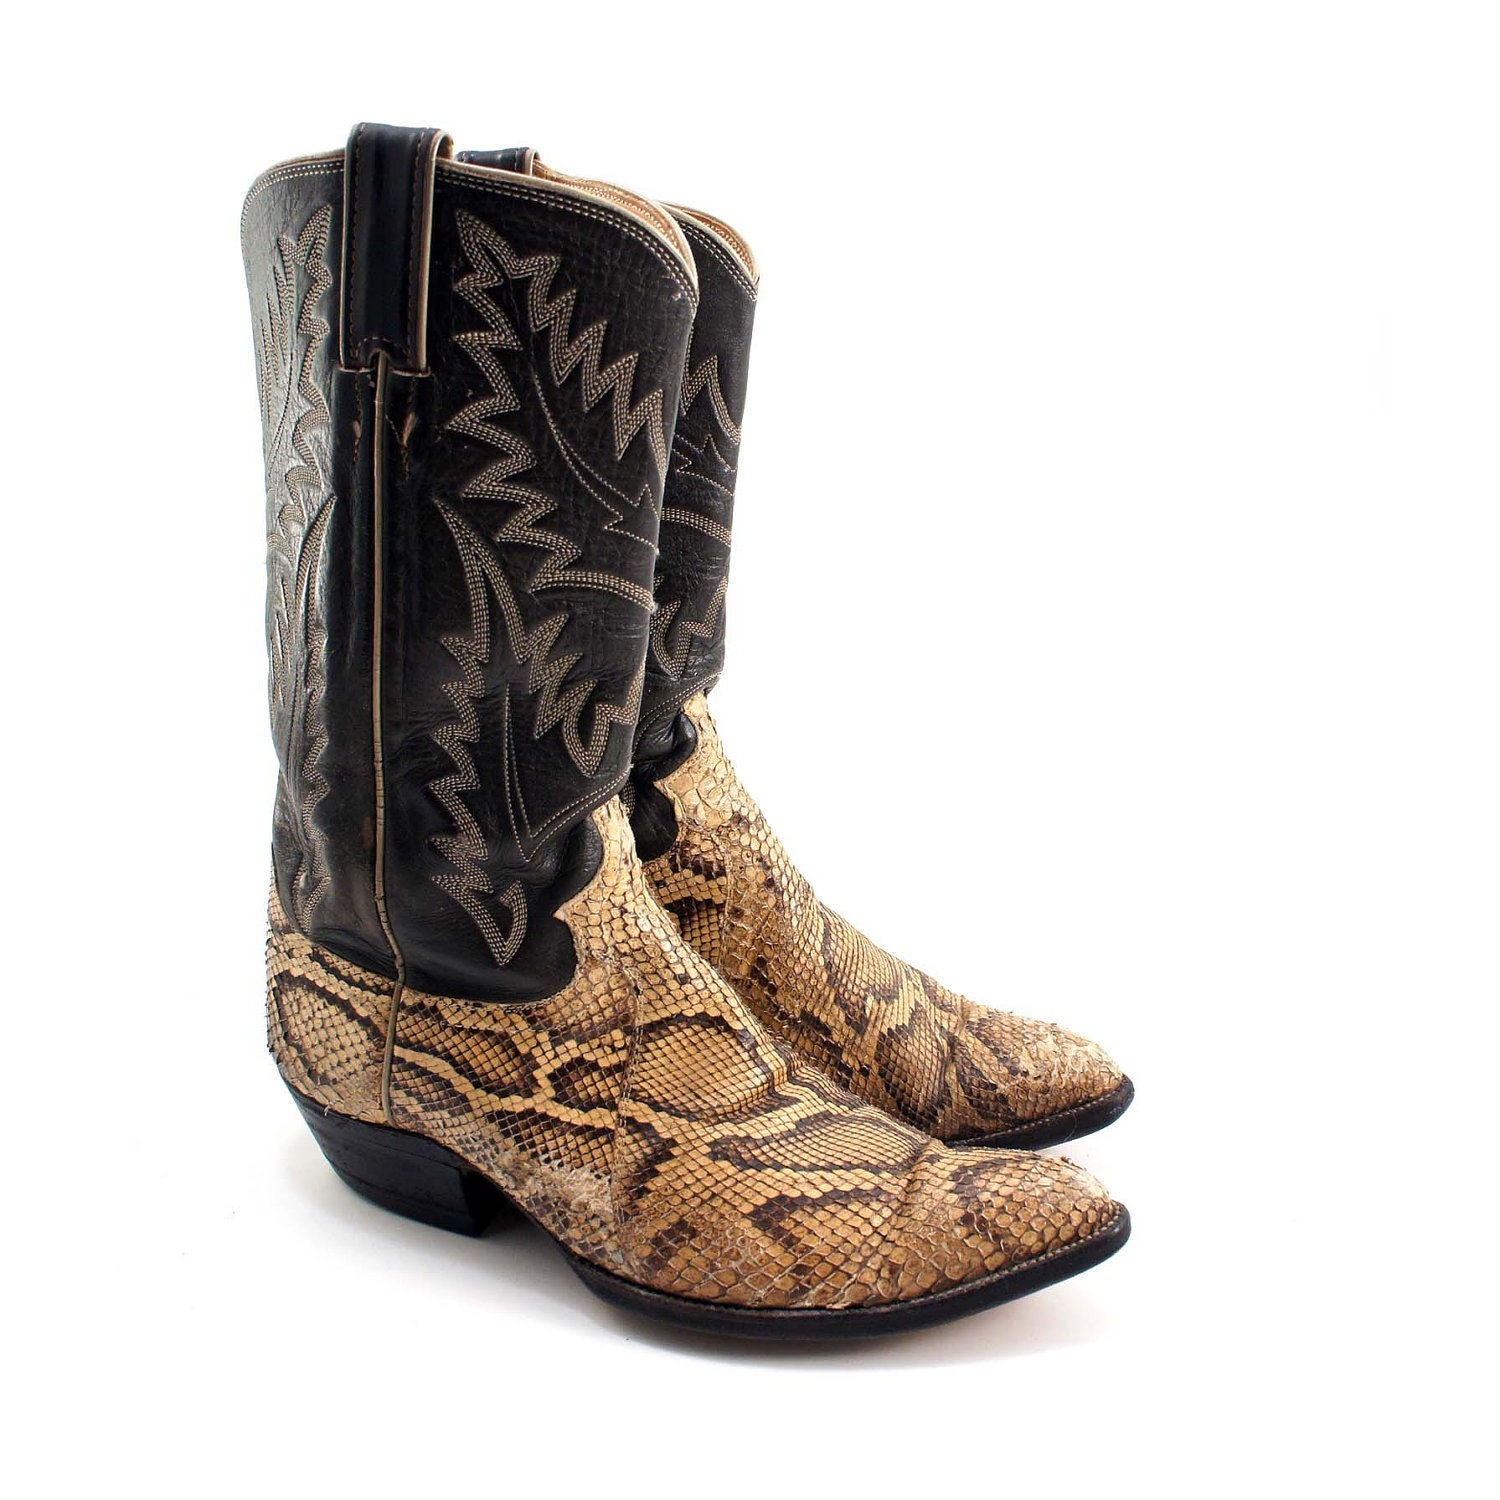 Distressed Snakeskin Vintage Cowboy Boots By Justin For